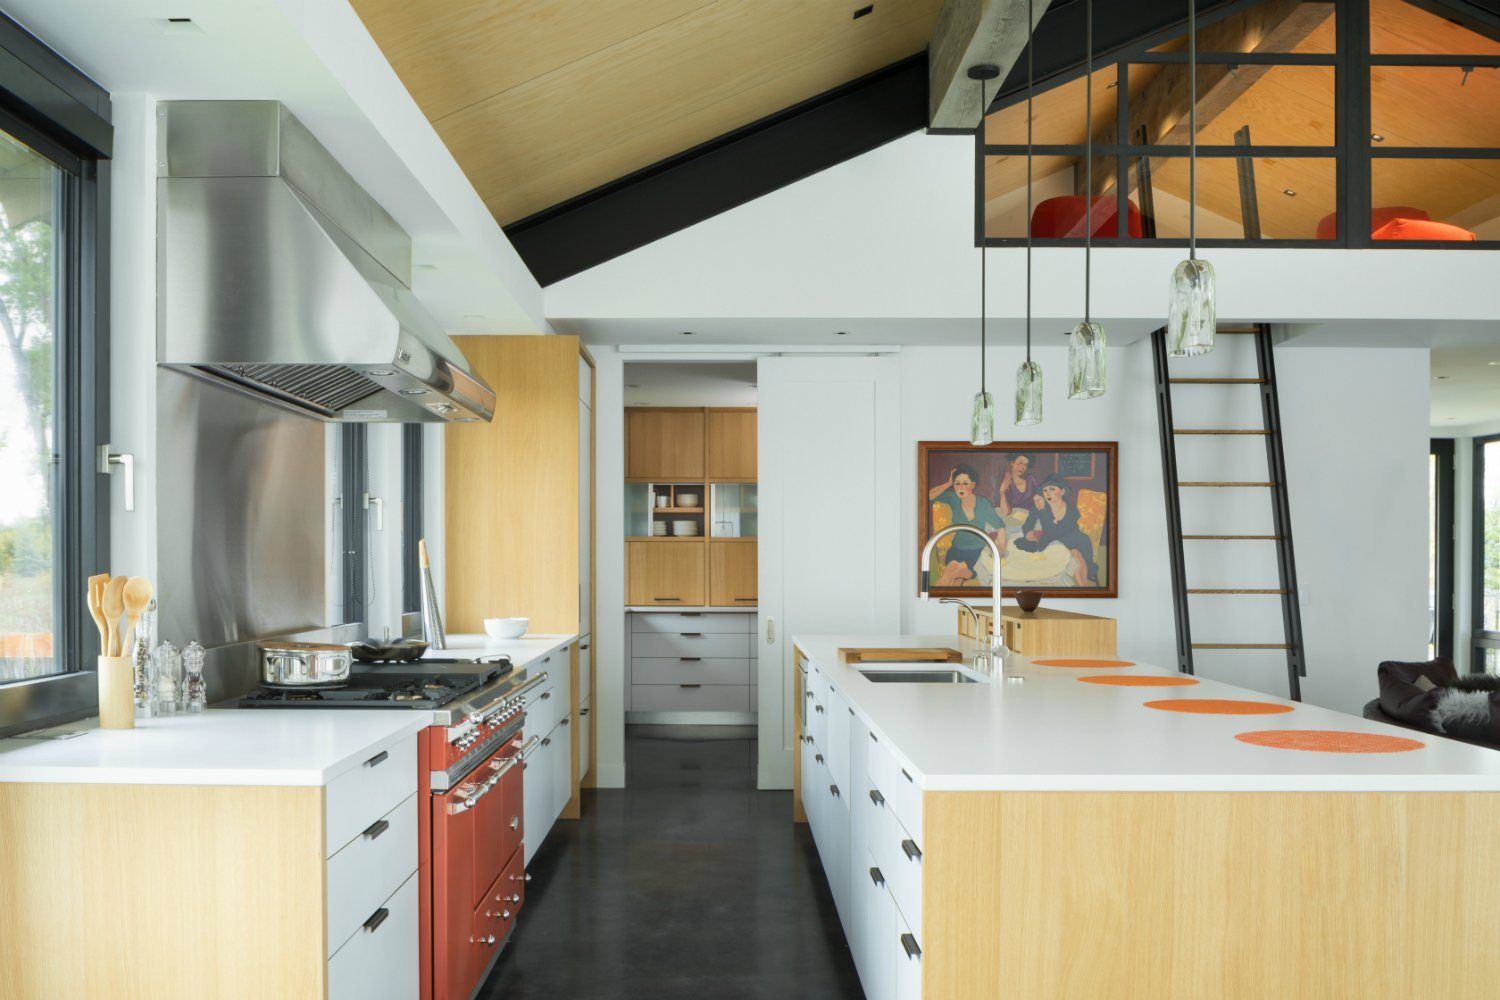 Kitchen, Wood, Concrete, Engineered Quartz, Stone Tile, Ceiling, Pendant, Refrigerator, Range, Range Hood, and Undermount Lacanche Range and Henrybuilt cabinetry in Kitchen and Pantry  Best Kitchen Refrigerator Range Hood Undermount Pendant Concrete Photos from The Landing